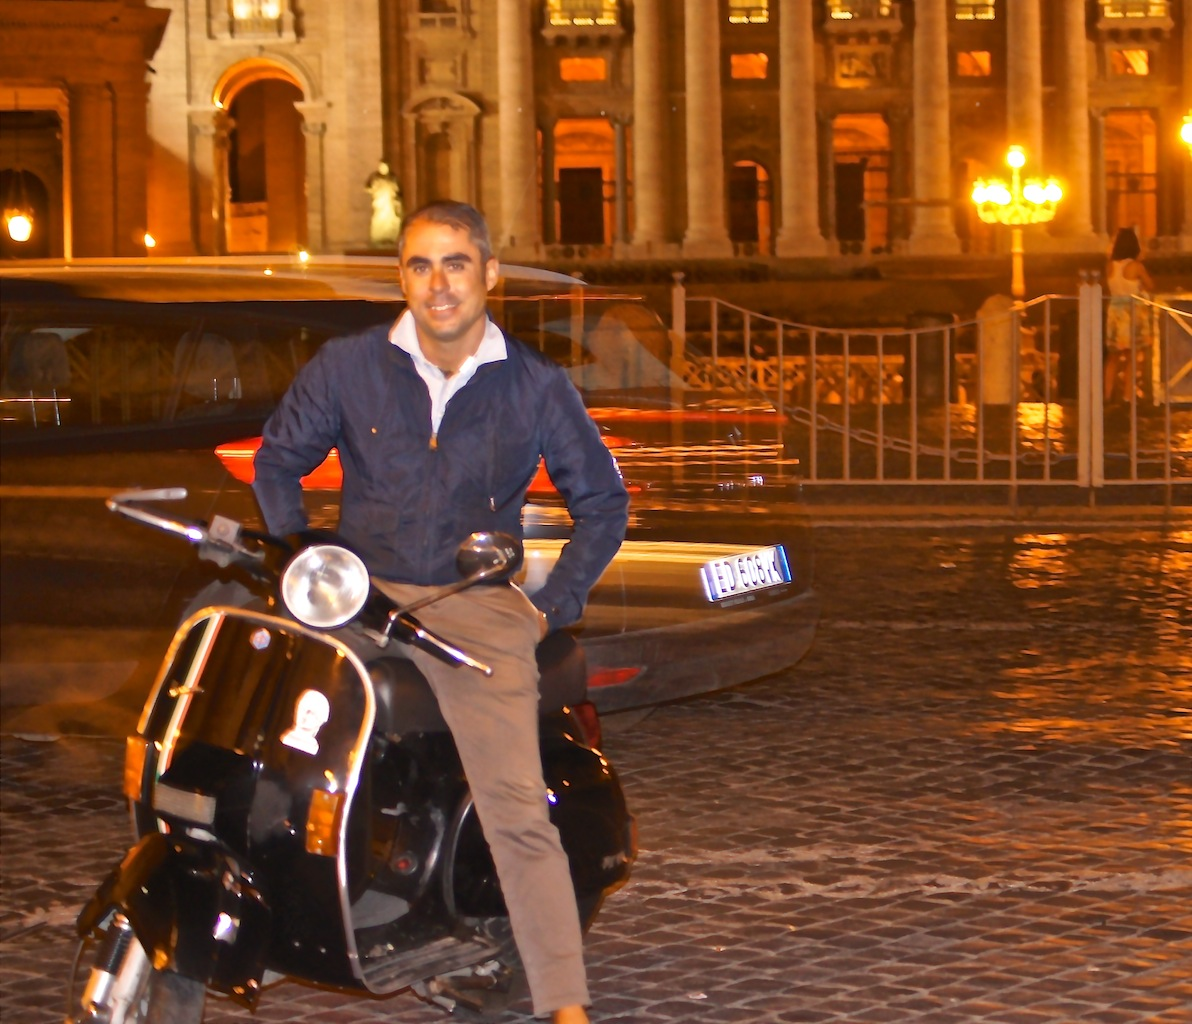 Valerio, quite at home on his Vespa!